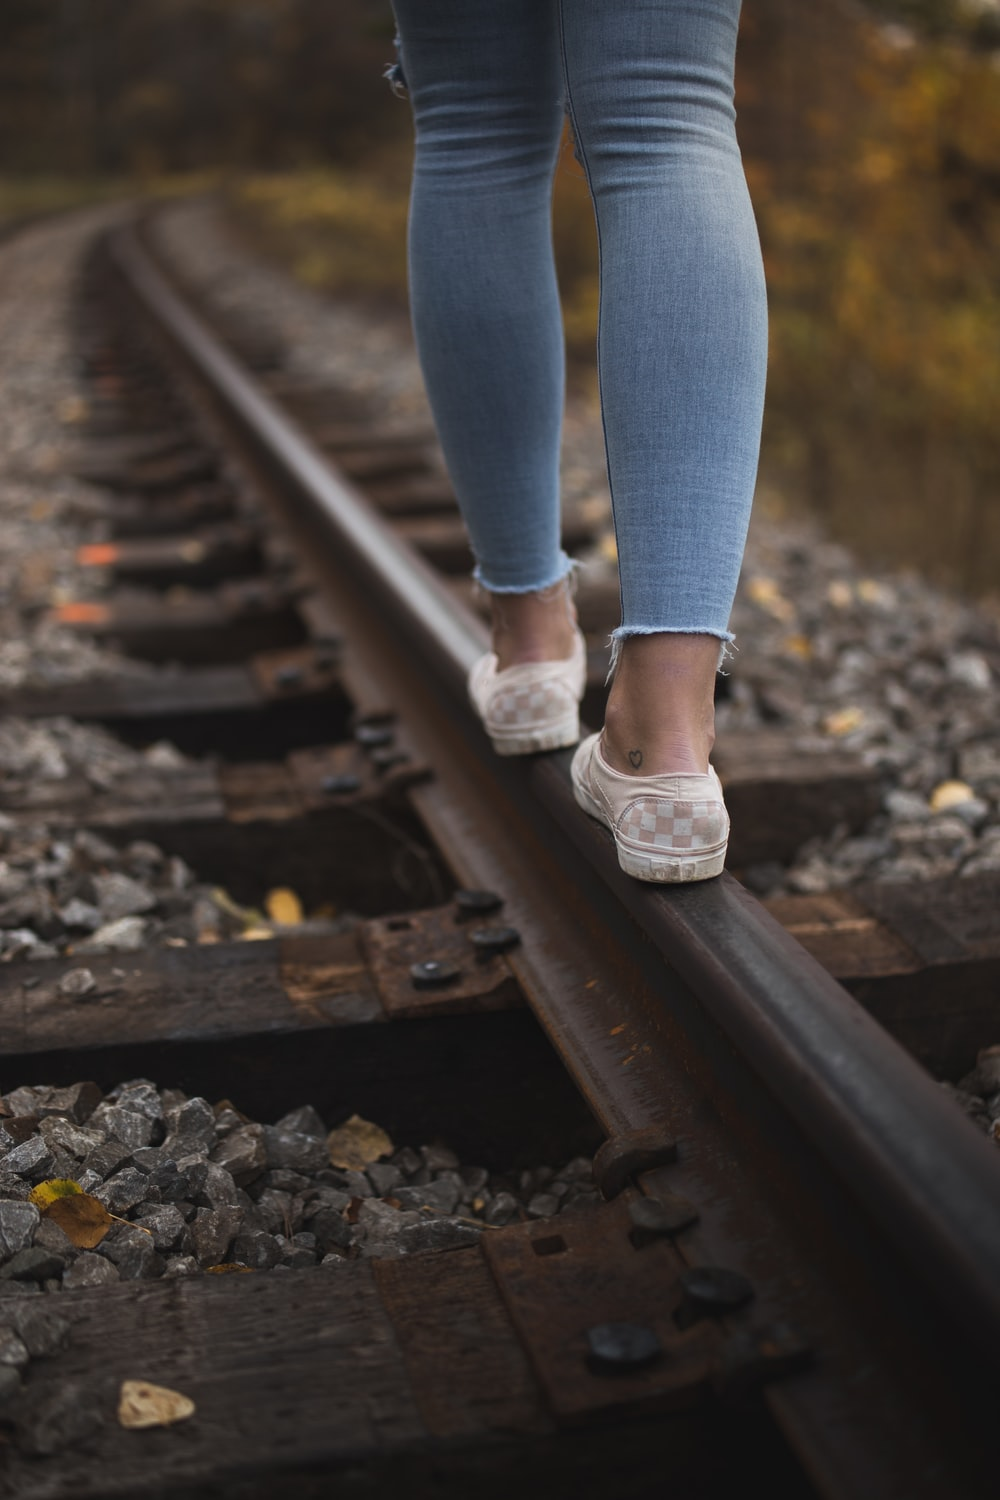 person in blue denim jeans and white low top sneakers standing on train rail during daytime